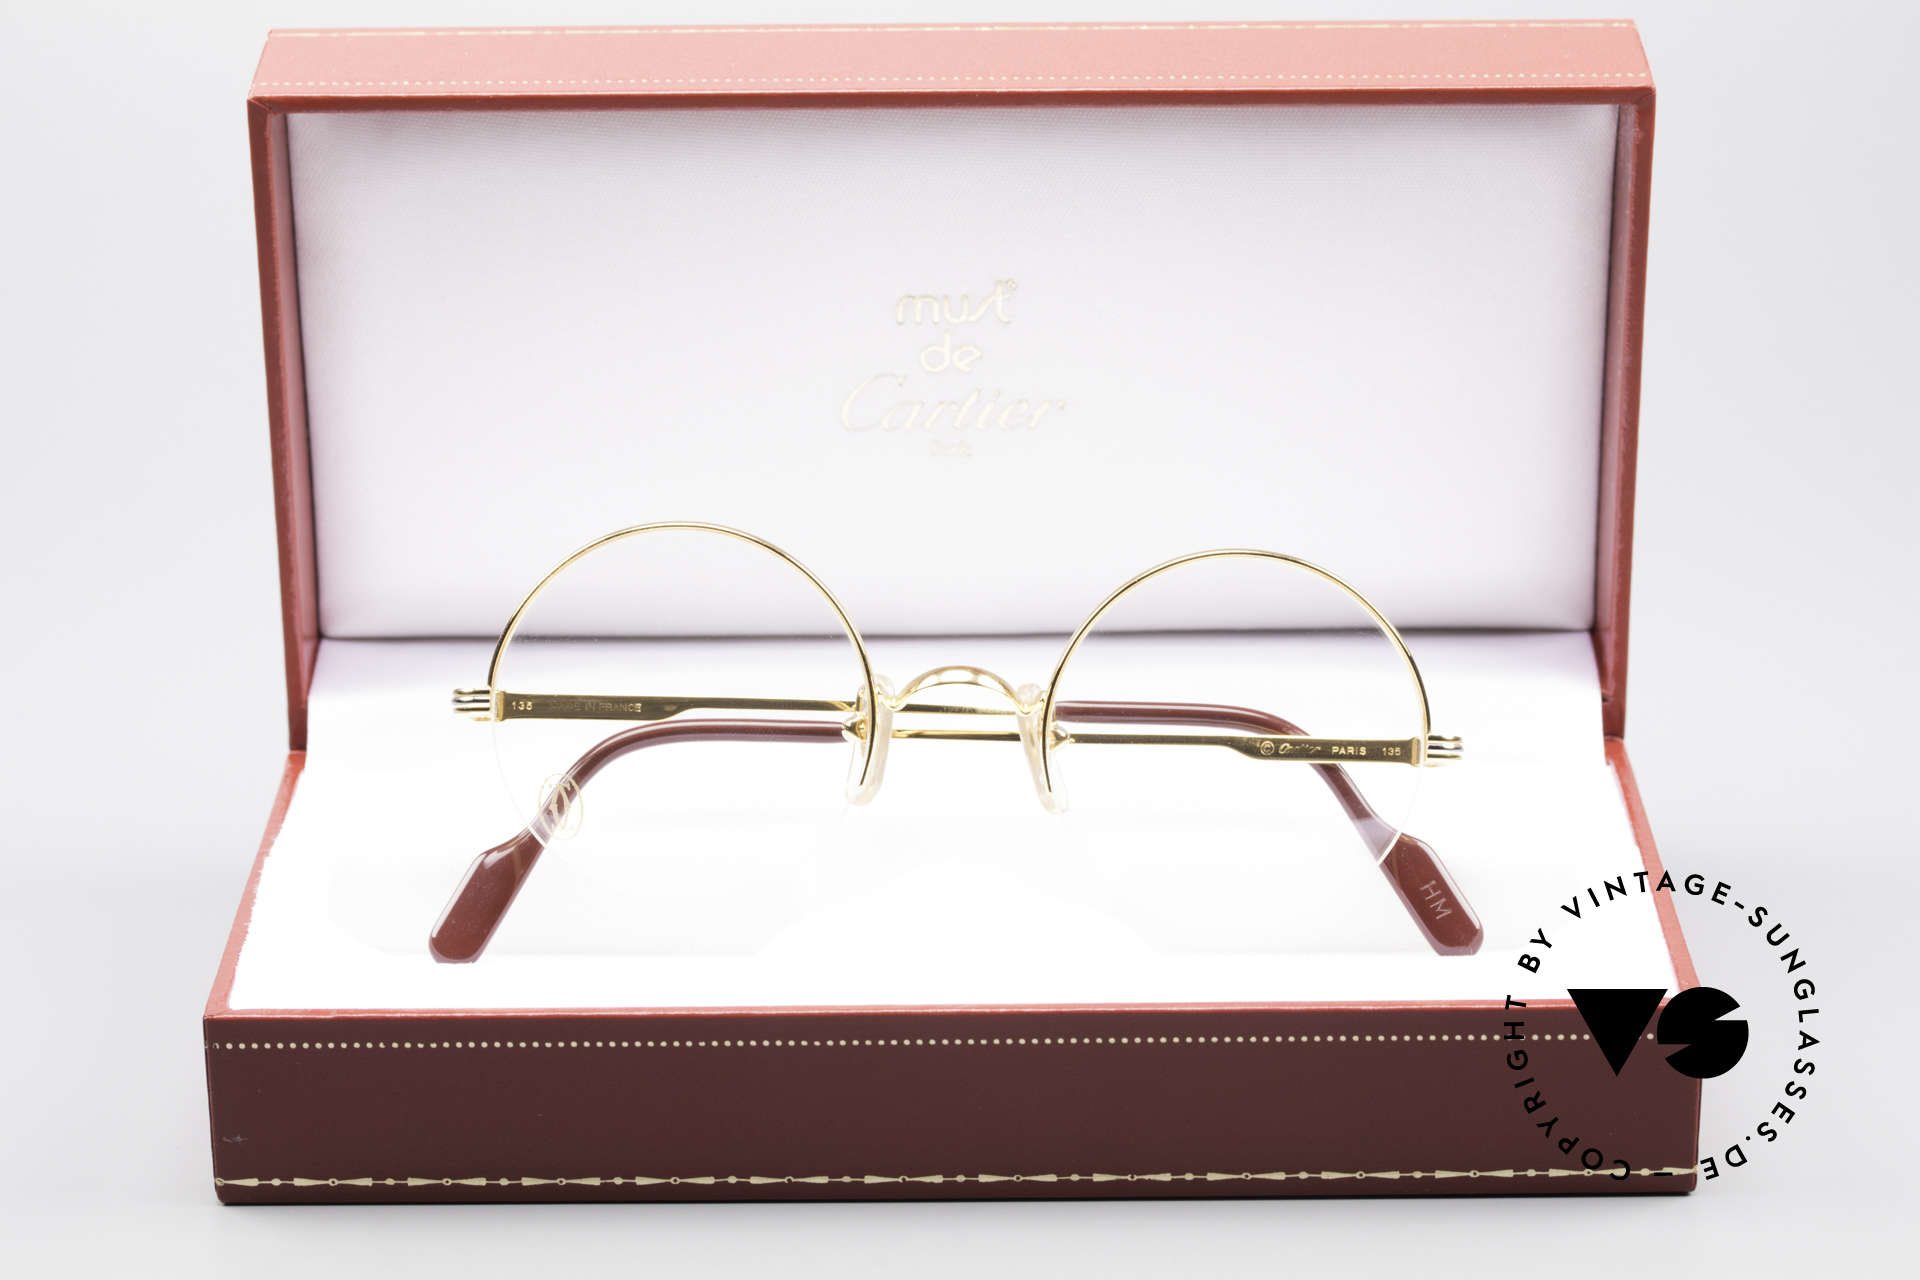 b1c8f9b884 Glasses Cartier Mayfair - S Luxury Round Eyeglasses